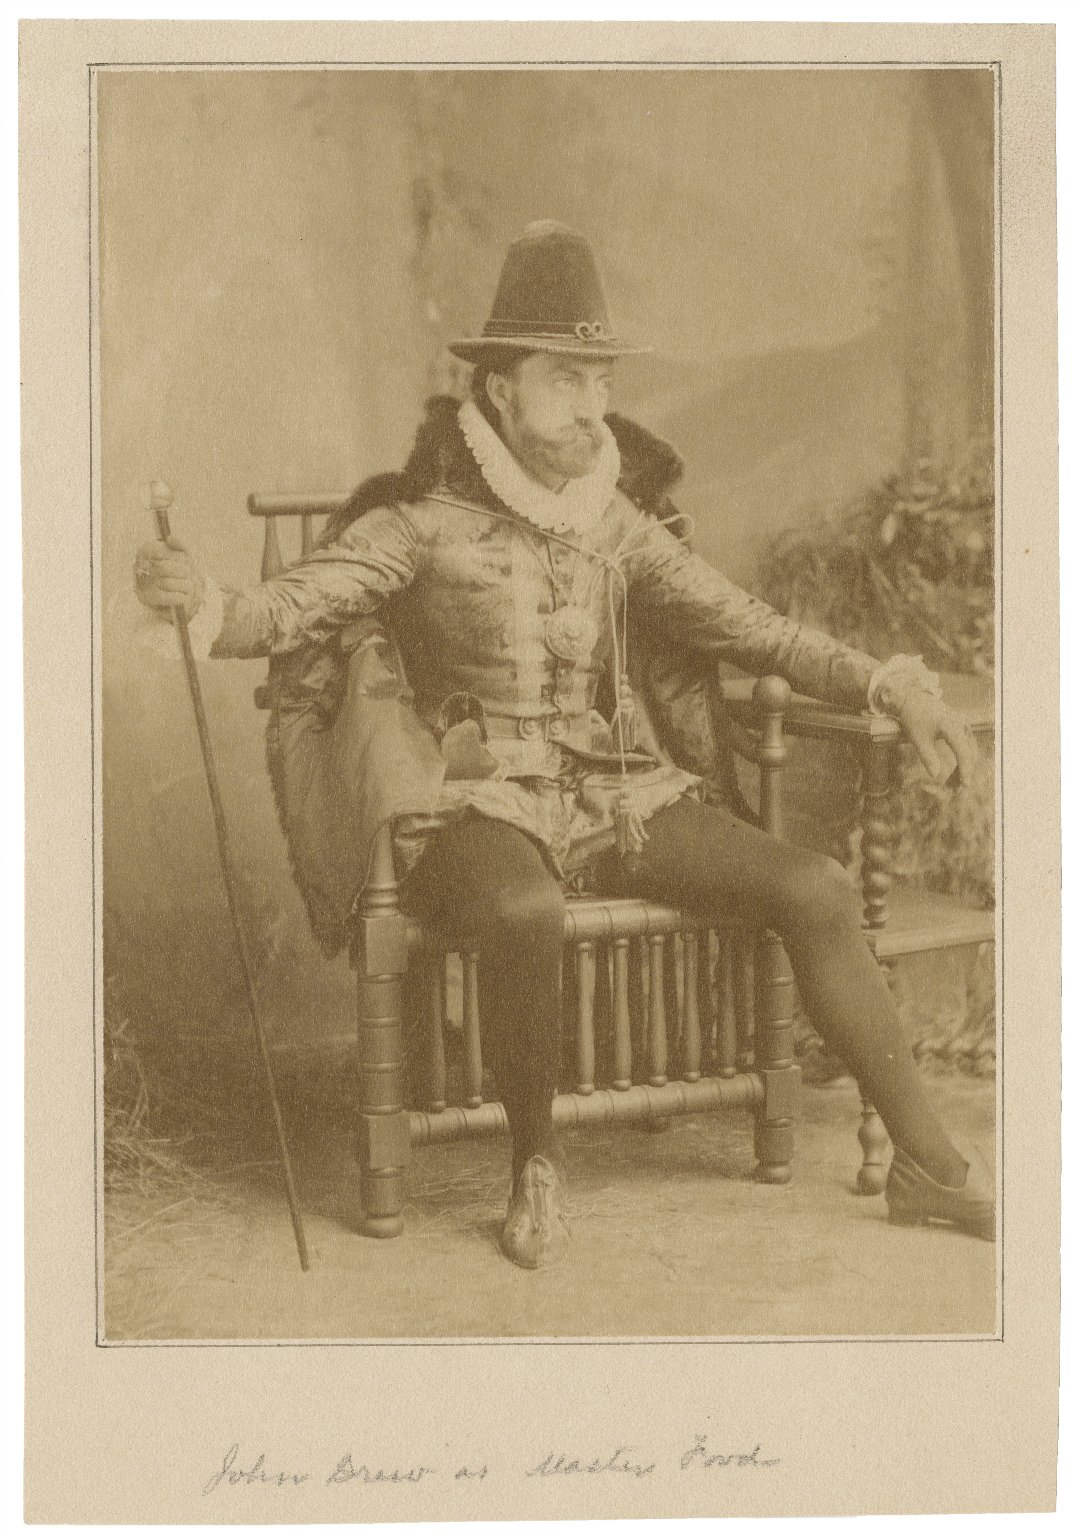 John Drew as Master Ford [in Shakespeare's Merry wives of Windsor] [graphic].